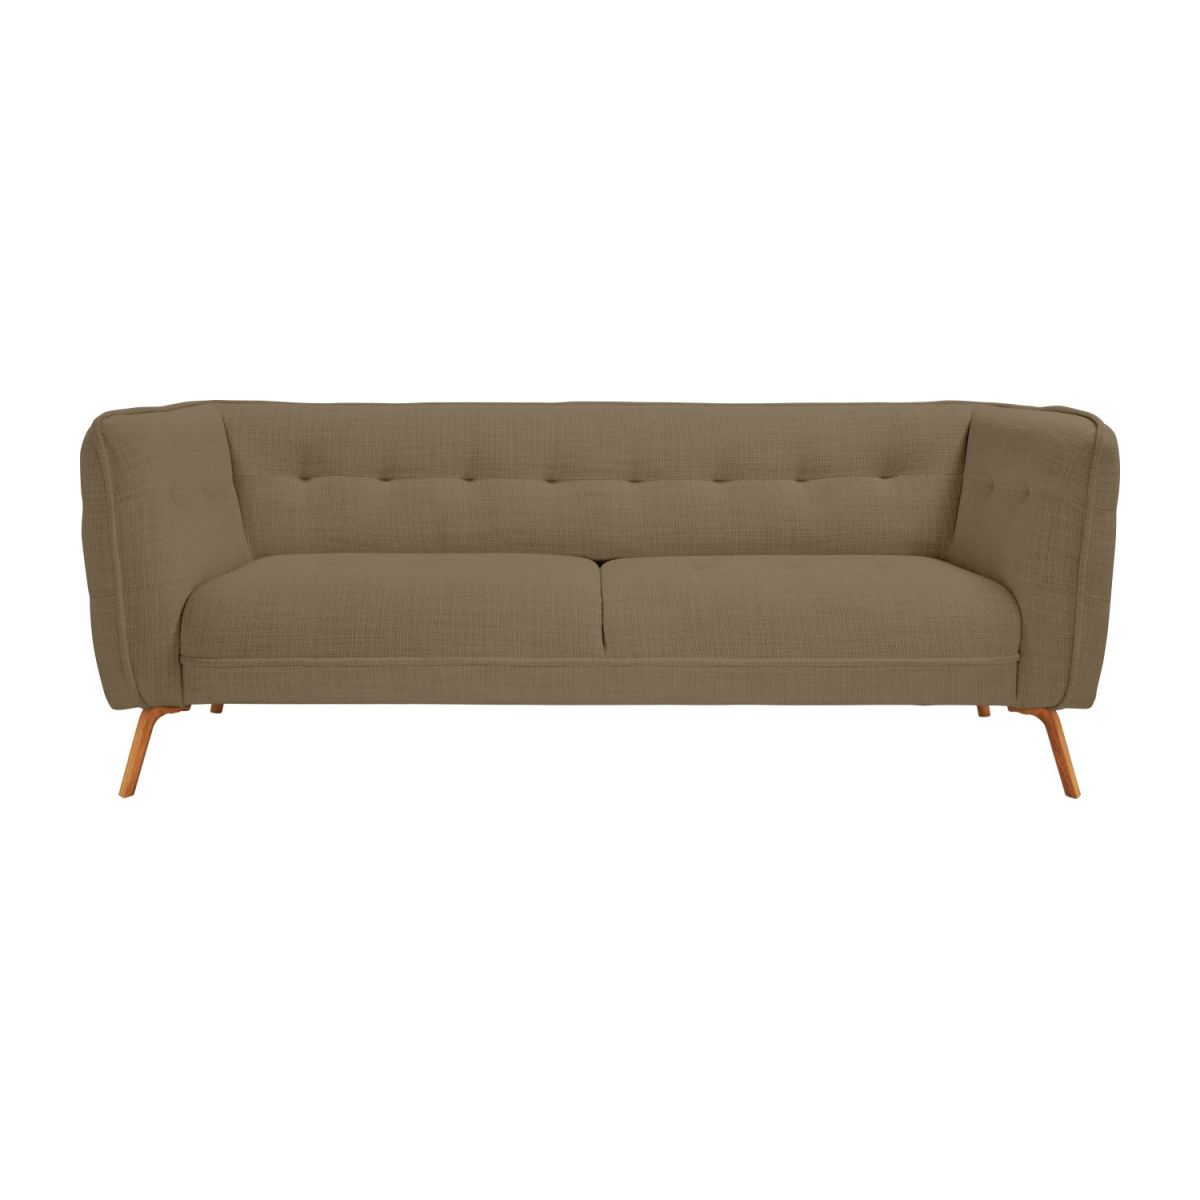 3 seater sofa in Fasoli fabric, jatoba brown and oak legs n°2